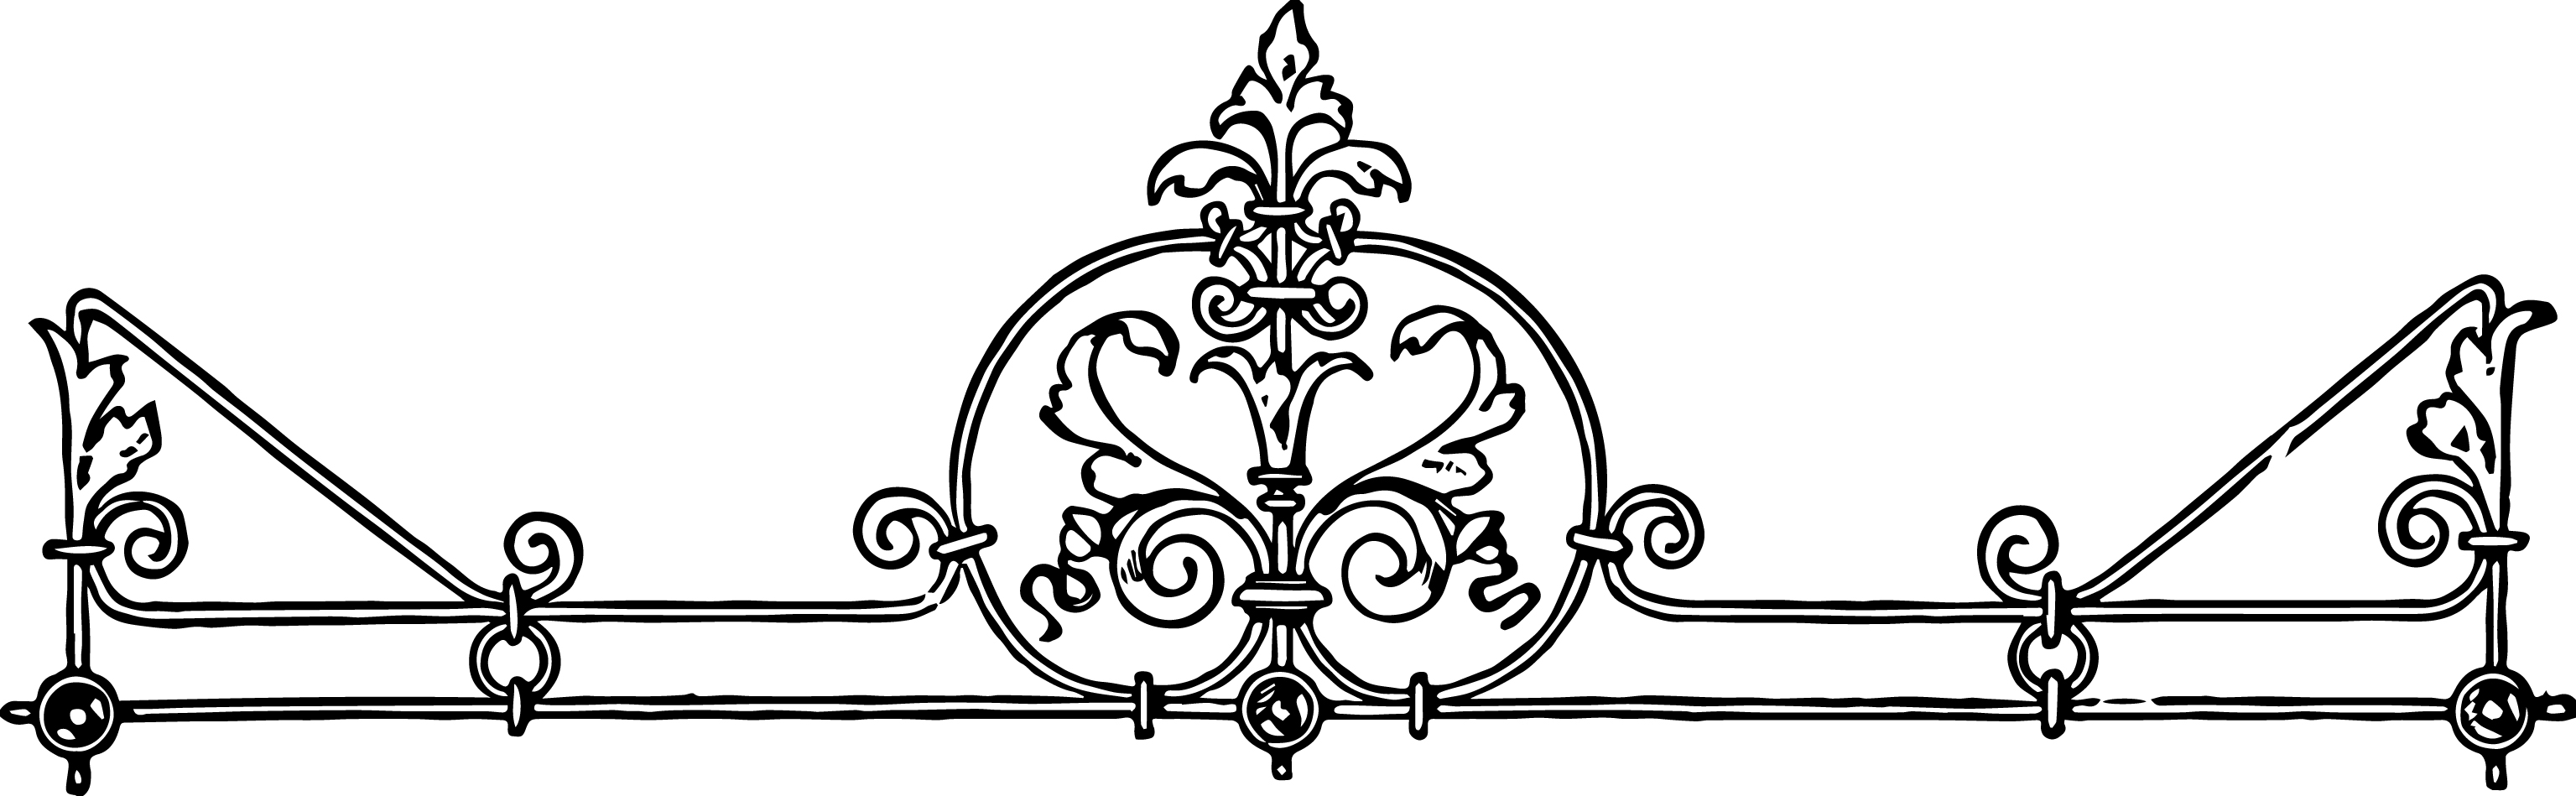 3071x949 Free Stock Vector Vintage Iron Scrollwork Oh So Nifty Vintage